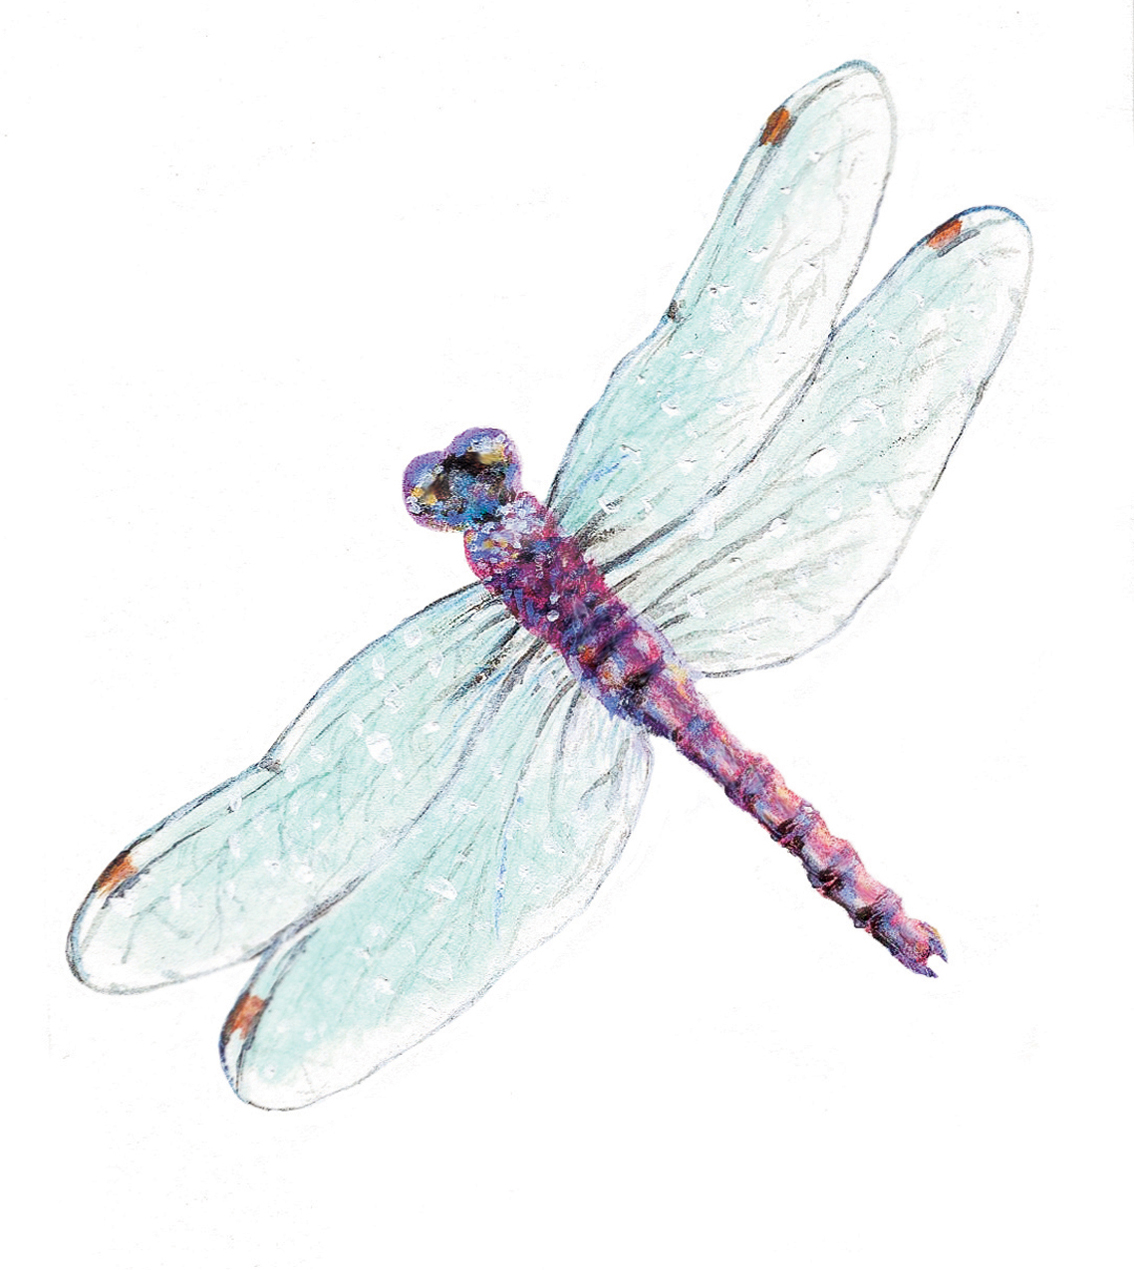 purple body dragonfly with light blue wings tattoo design. Black Bedroom Furniture Sets. Home Design Ideas